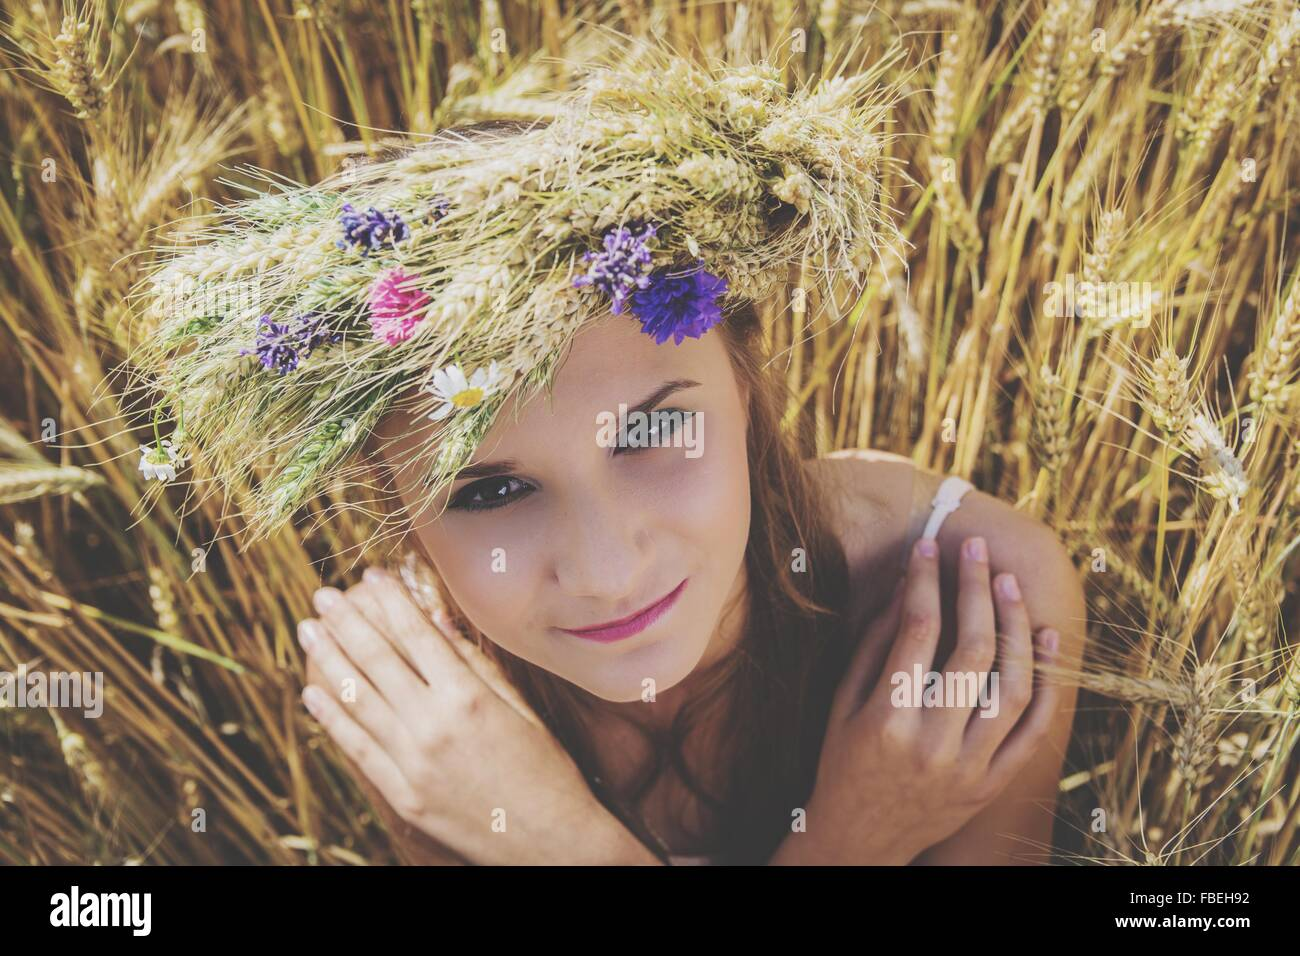 Portrait Of Beautiful Young Woman Wearing Flowers On Head At Field - Stock Image